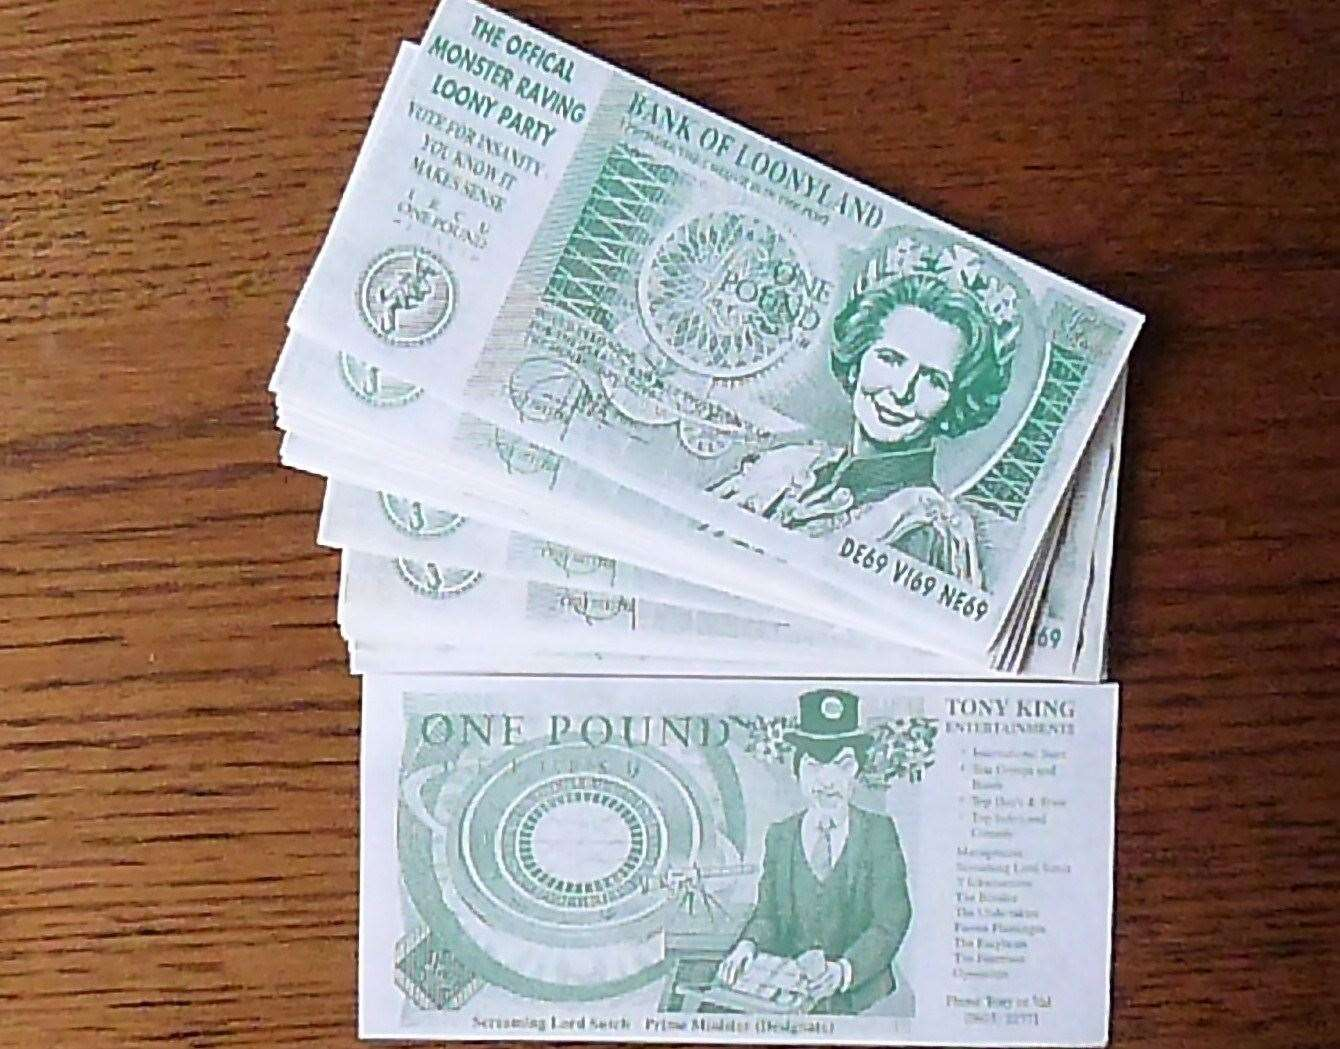 Loony pound notes (12291256)